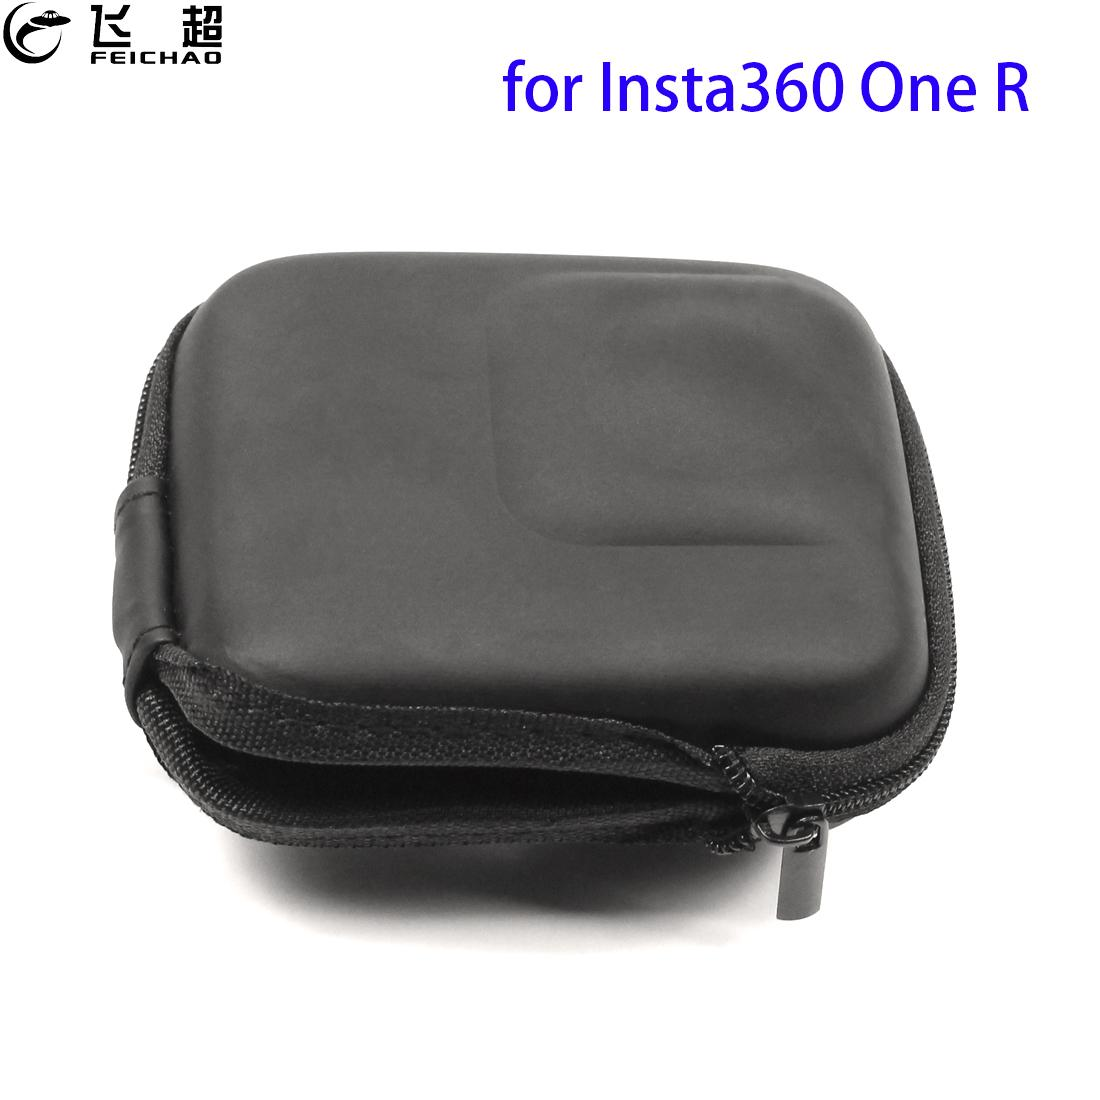 Mini Storage Bag Portable for Insta360 ONE R 4K Insta 360 Panoramic Edition Camera Protective Carrying